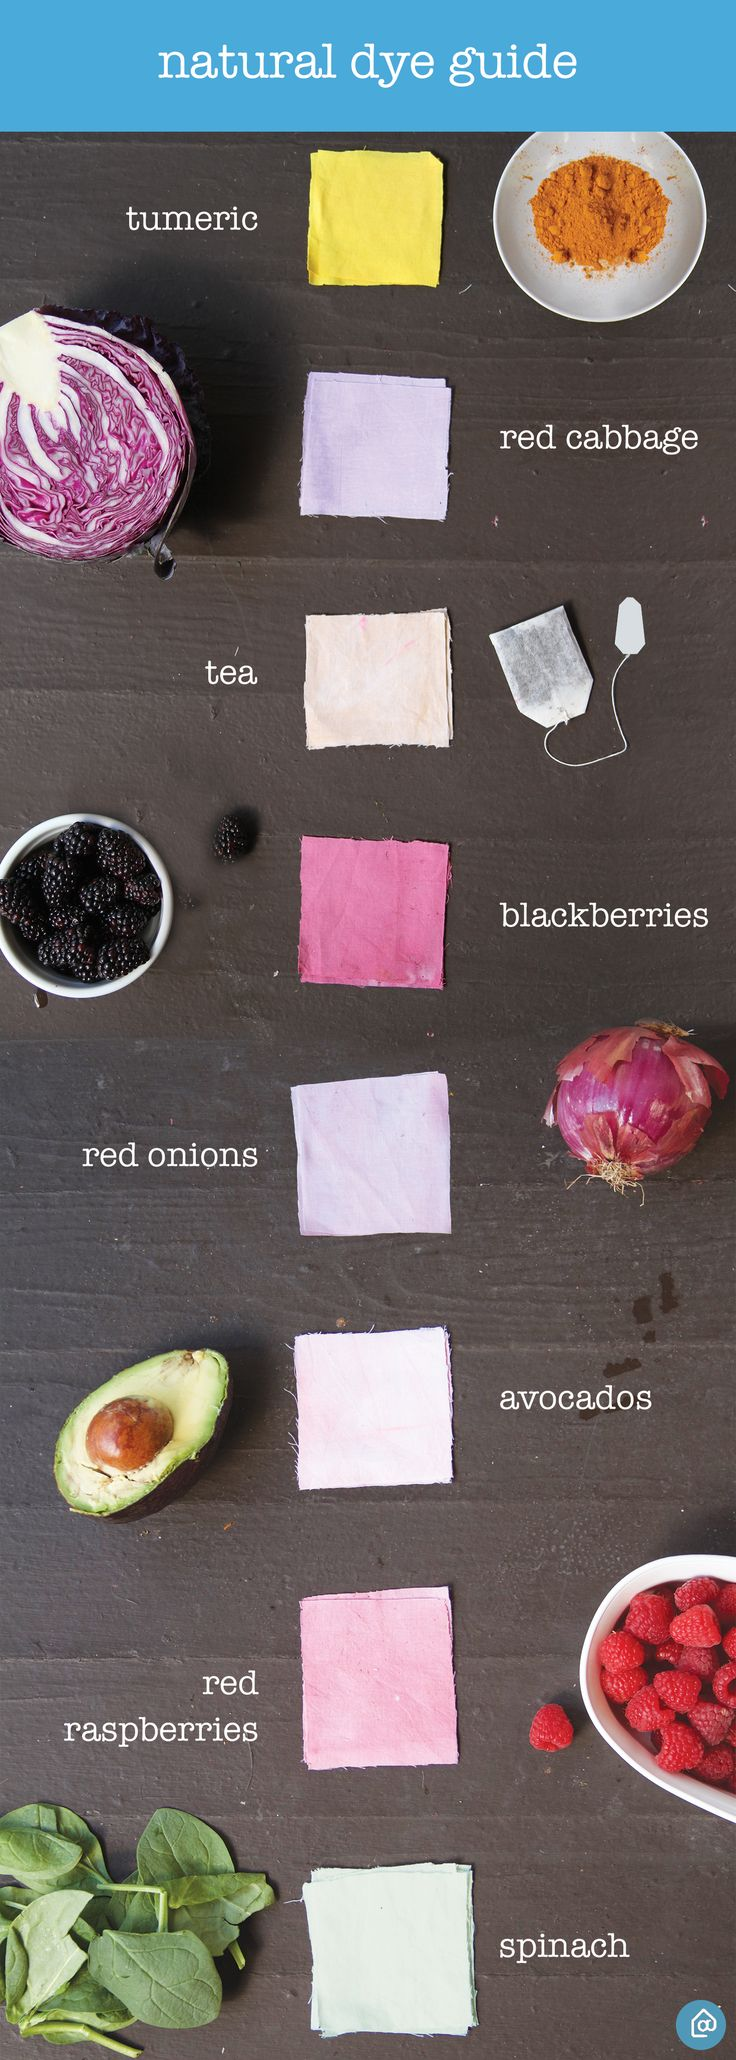 For a natural twist on tie dying, use berries and plants to tie dye shirts, cloth bags and more. Materials: salt fixative for berry dyes (½ c salt to 8 c of water), plant fixative for plant dyes (4 parts cold water to 1 part vinegar), fabric. Steps: 1) Soak fabric in fixative for an hour. 2) Squeeze out excess water and rinse in cool water. 3) Boil equal parts water and natural dye material of choice using our guide. Simmer for an hour. 4) Place wet fabric in dye bath. 5) Let soak overnight.